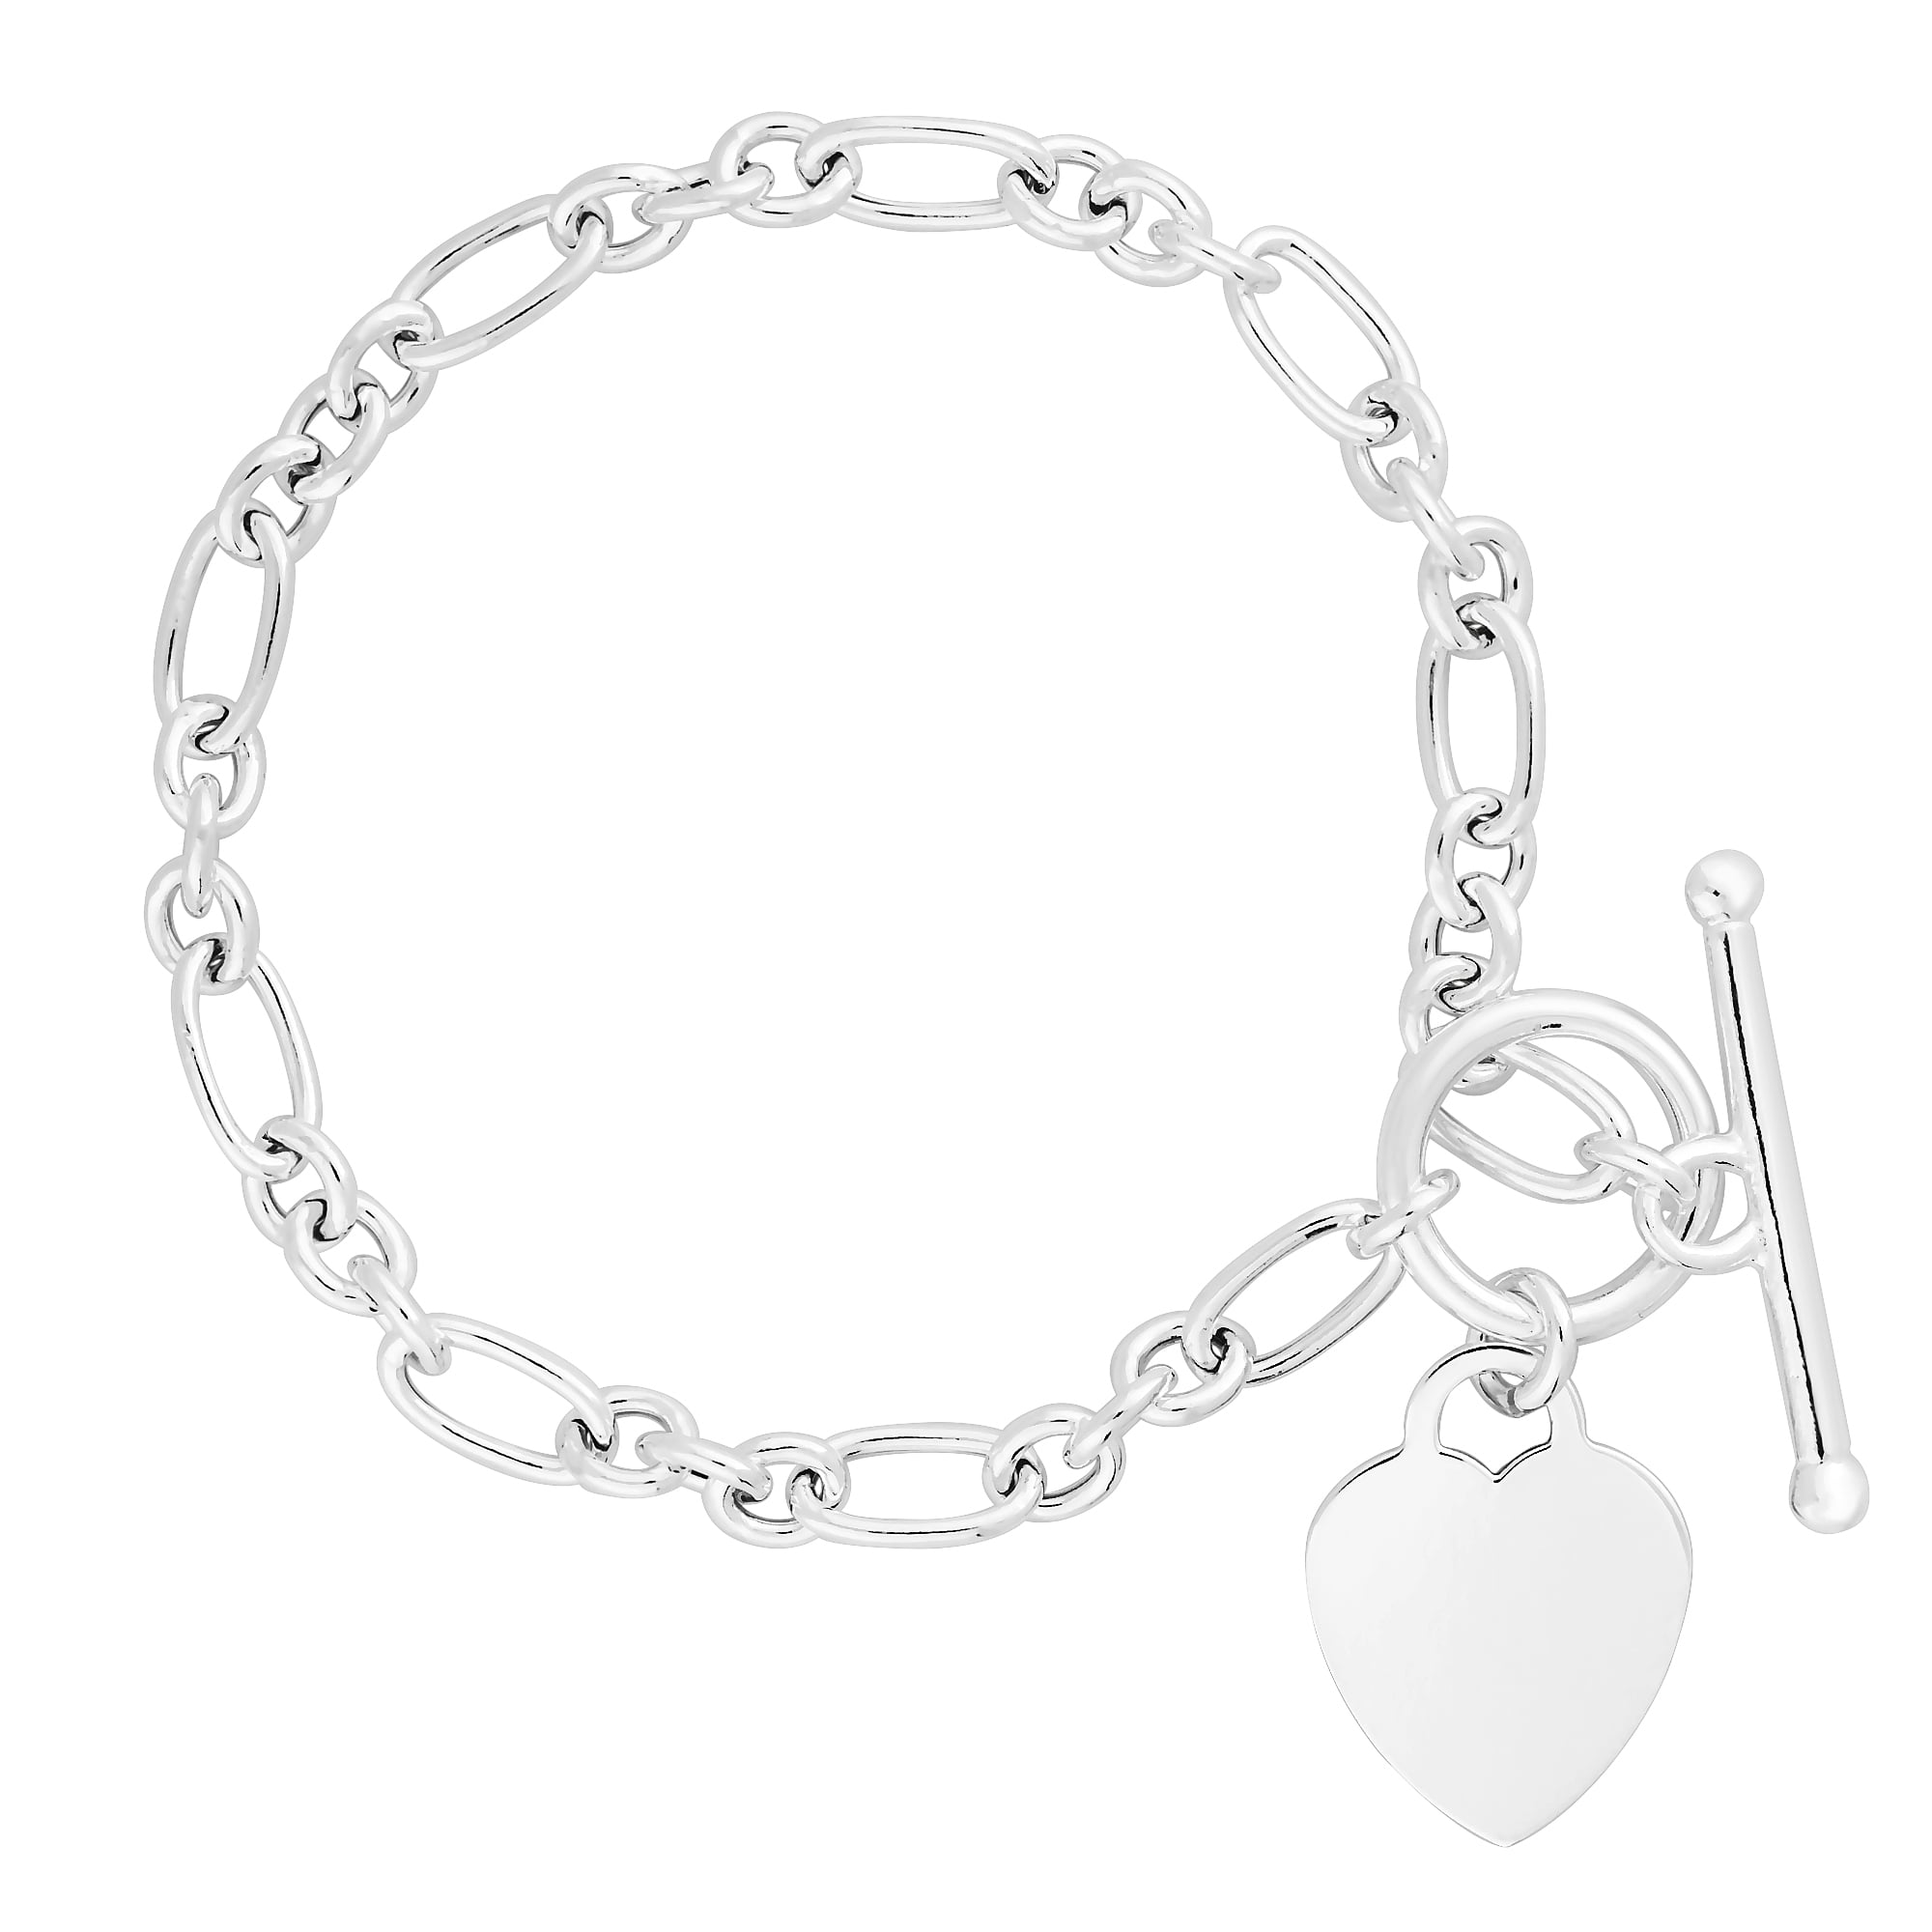 xs silver hires bracelet sweetie us links heart en sterling of london charm anklet chain